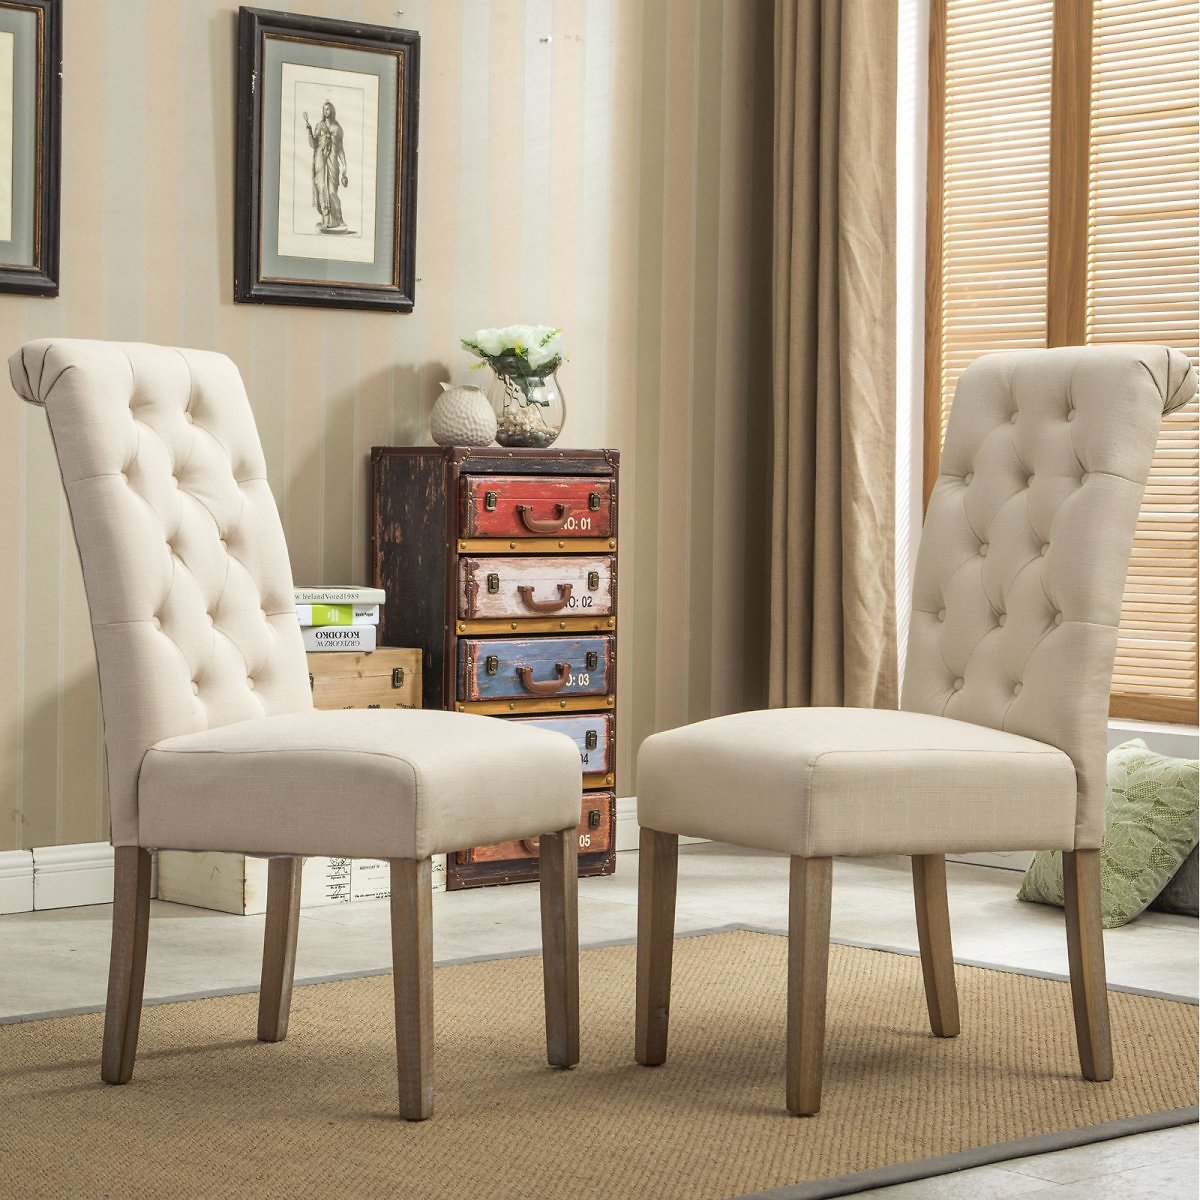 Roundhill Furniture Habit Solid Wood Tufted Parsons Dining Chair, Tan, Set of 2 (6 Colors)